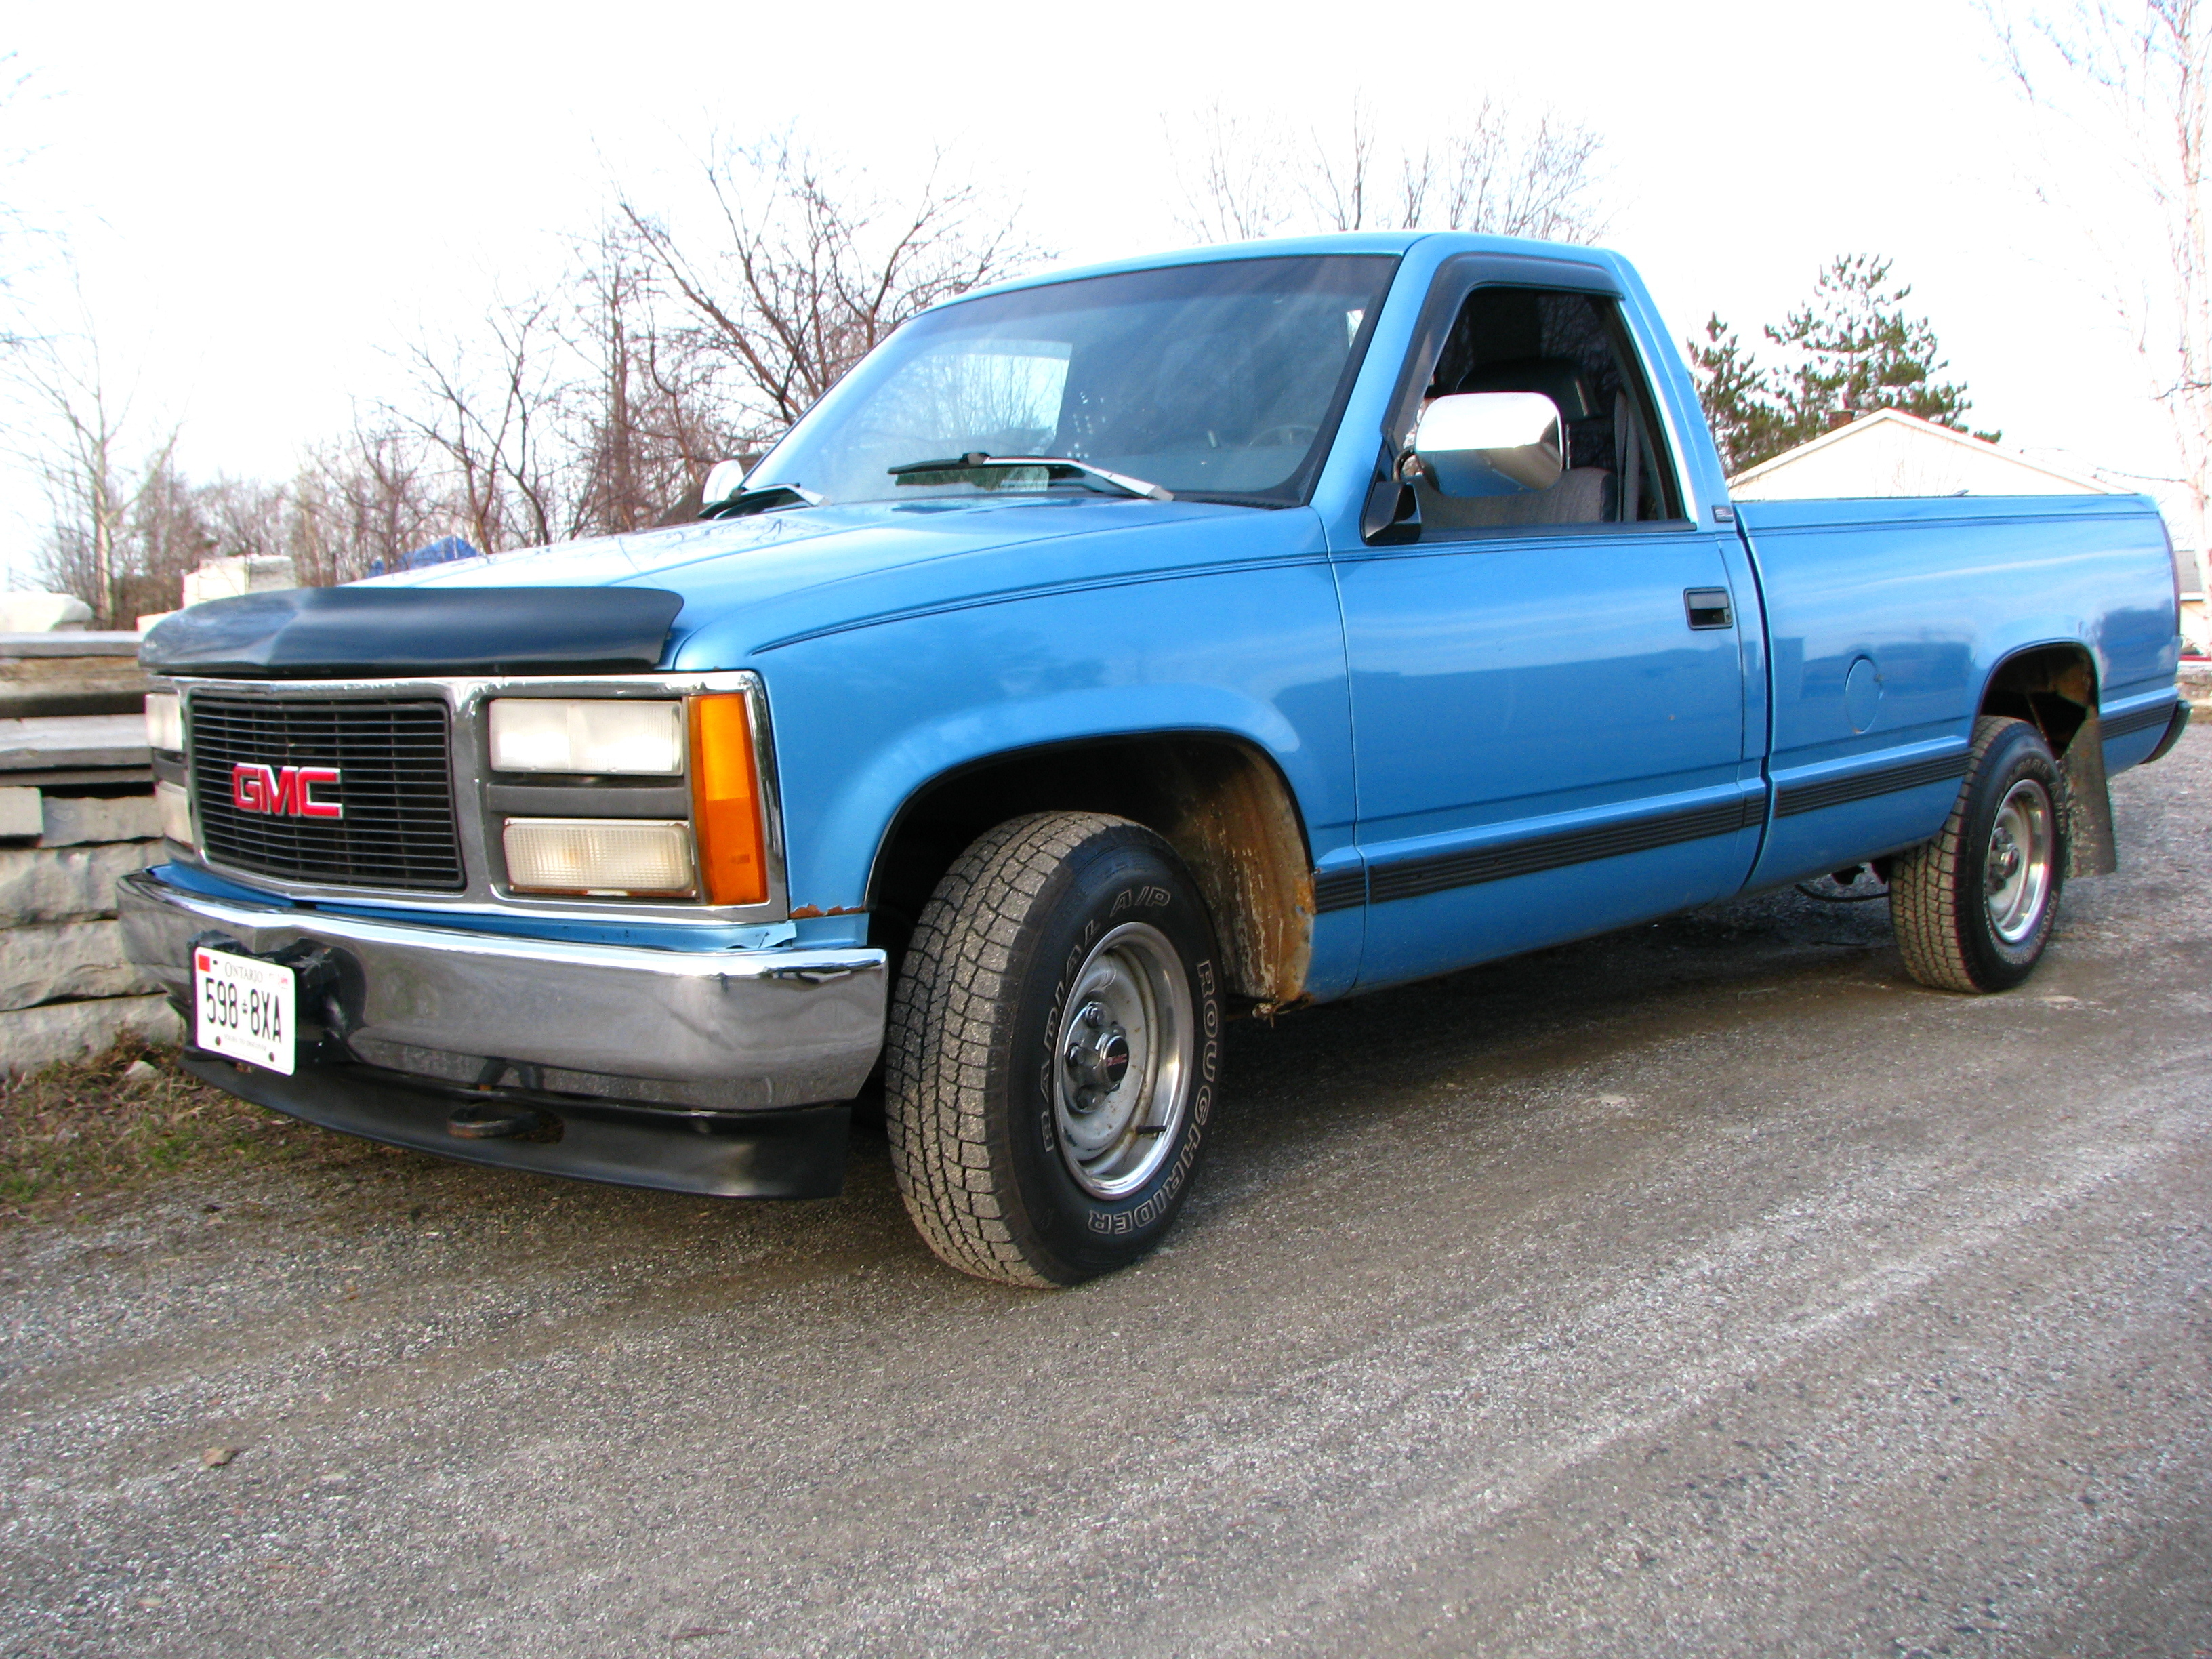 lordlucifer's 1993 GMC Sierra 1500 Regular Cab